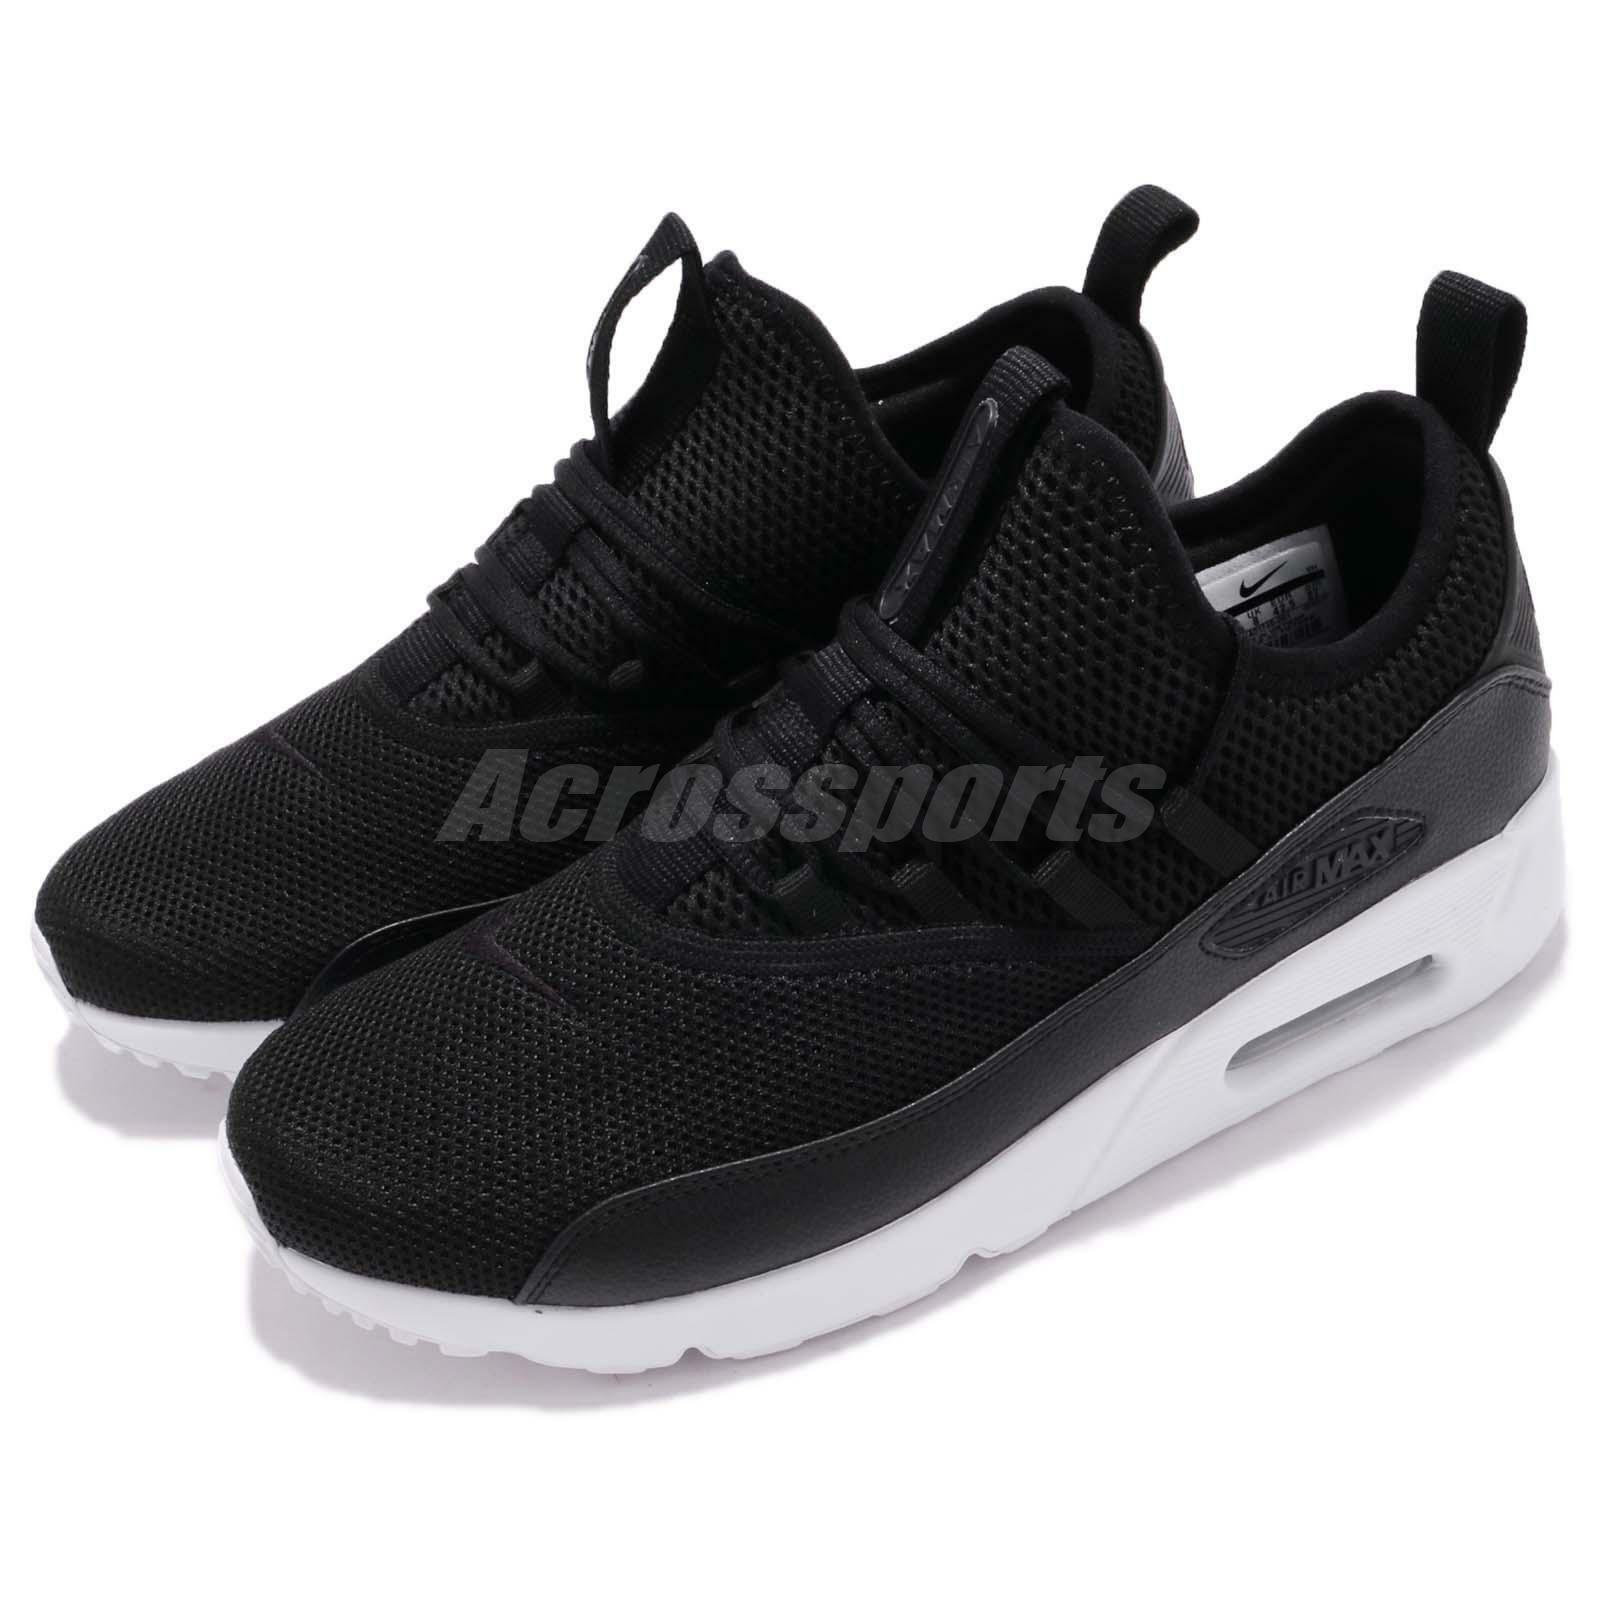 Nike Air Max 90 EZ Black White Slip On Men Running shoes Sneakers AO1745-001